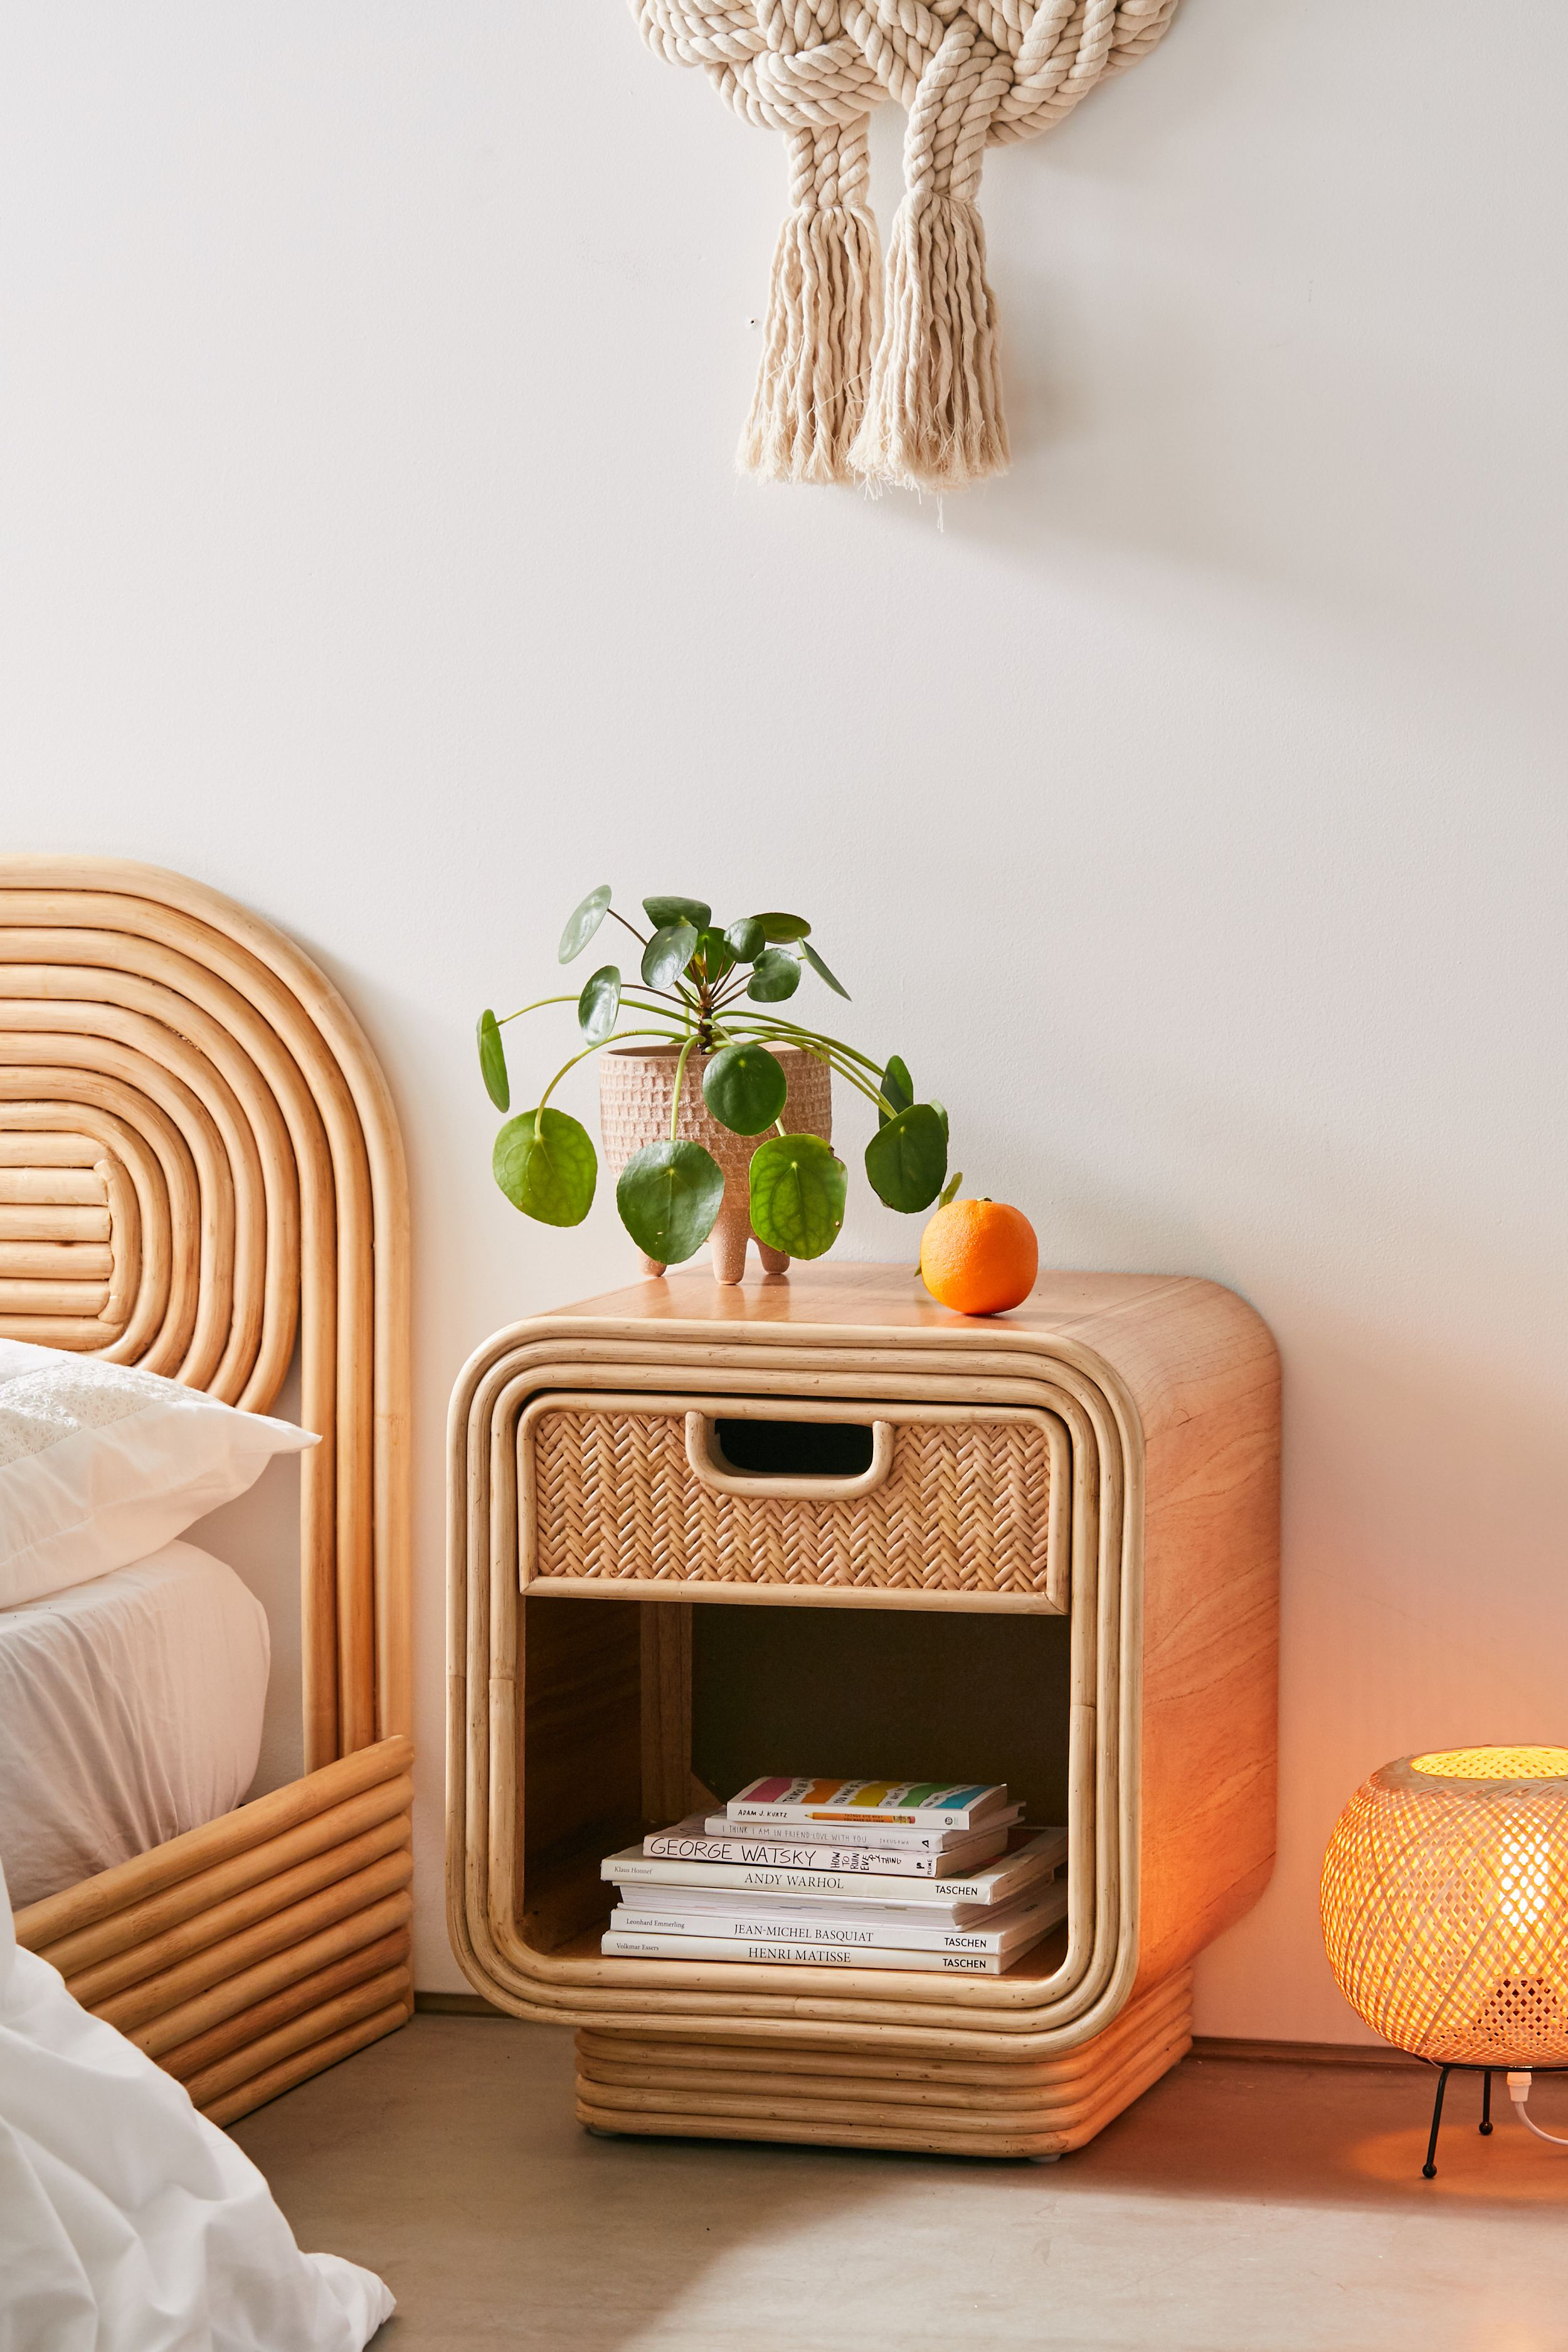 Urban Outfitters Home New Rattan Ria Collection Launches For Spring